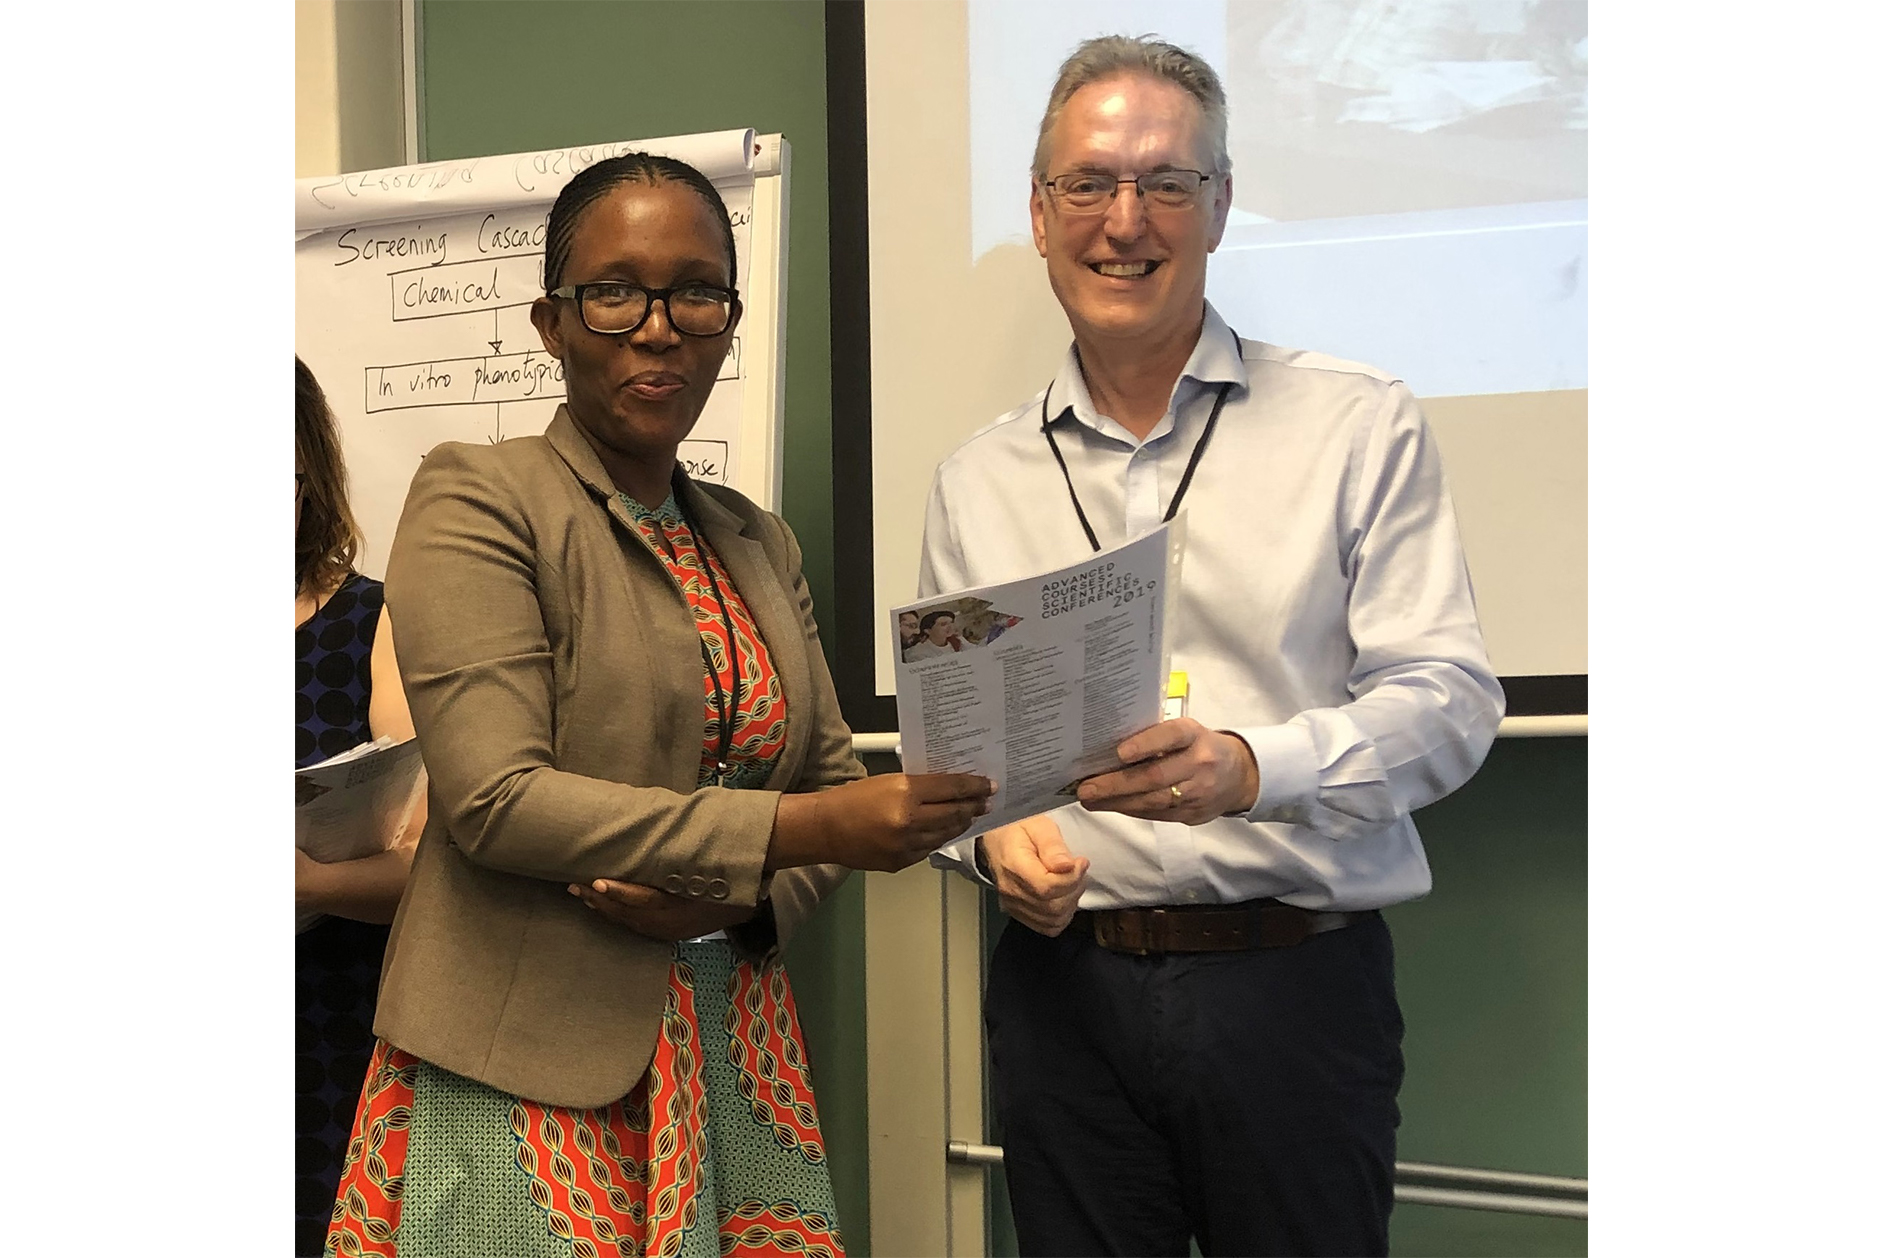 Certificate ceremony at ACSC's Drug Discovery course, Cape Town